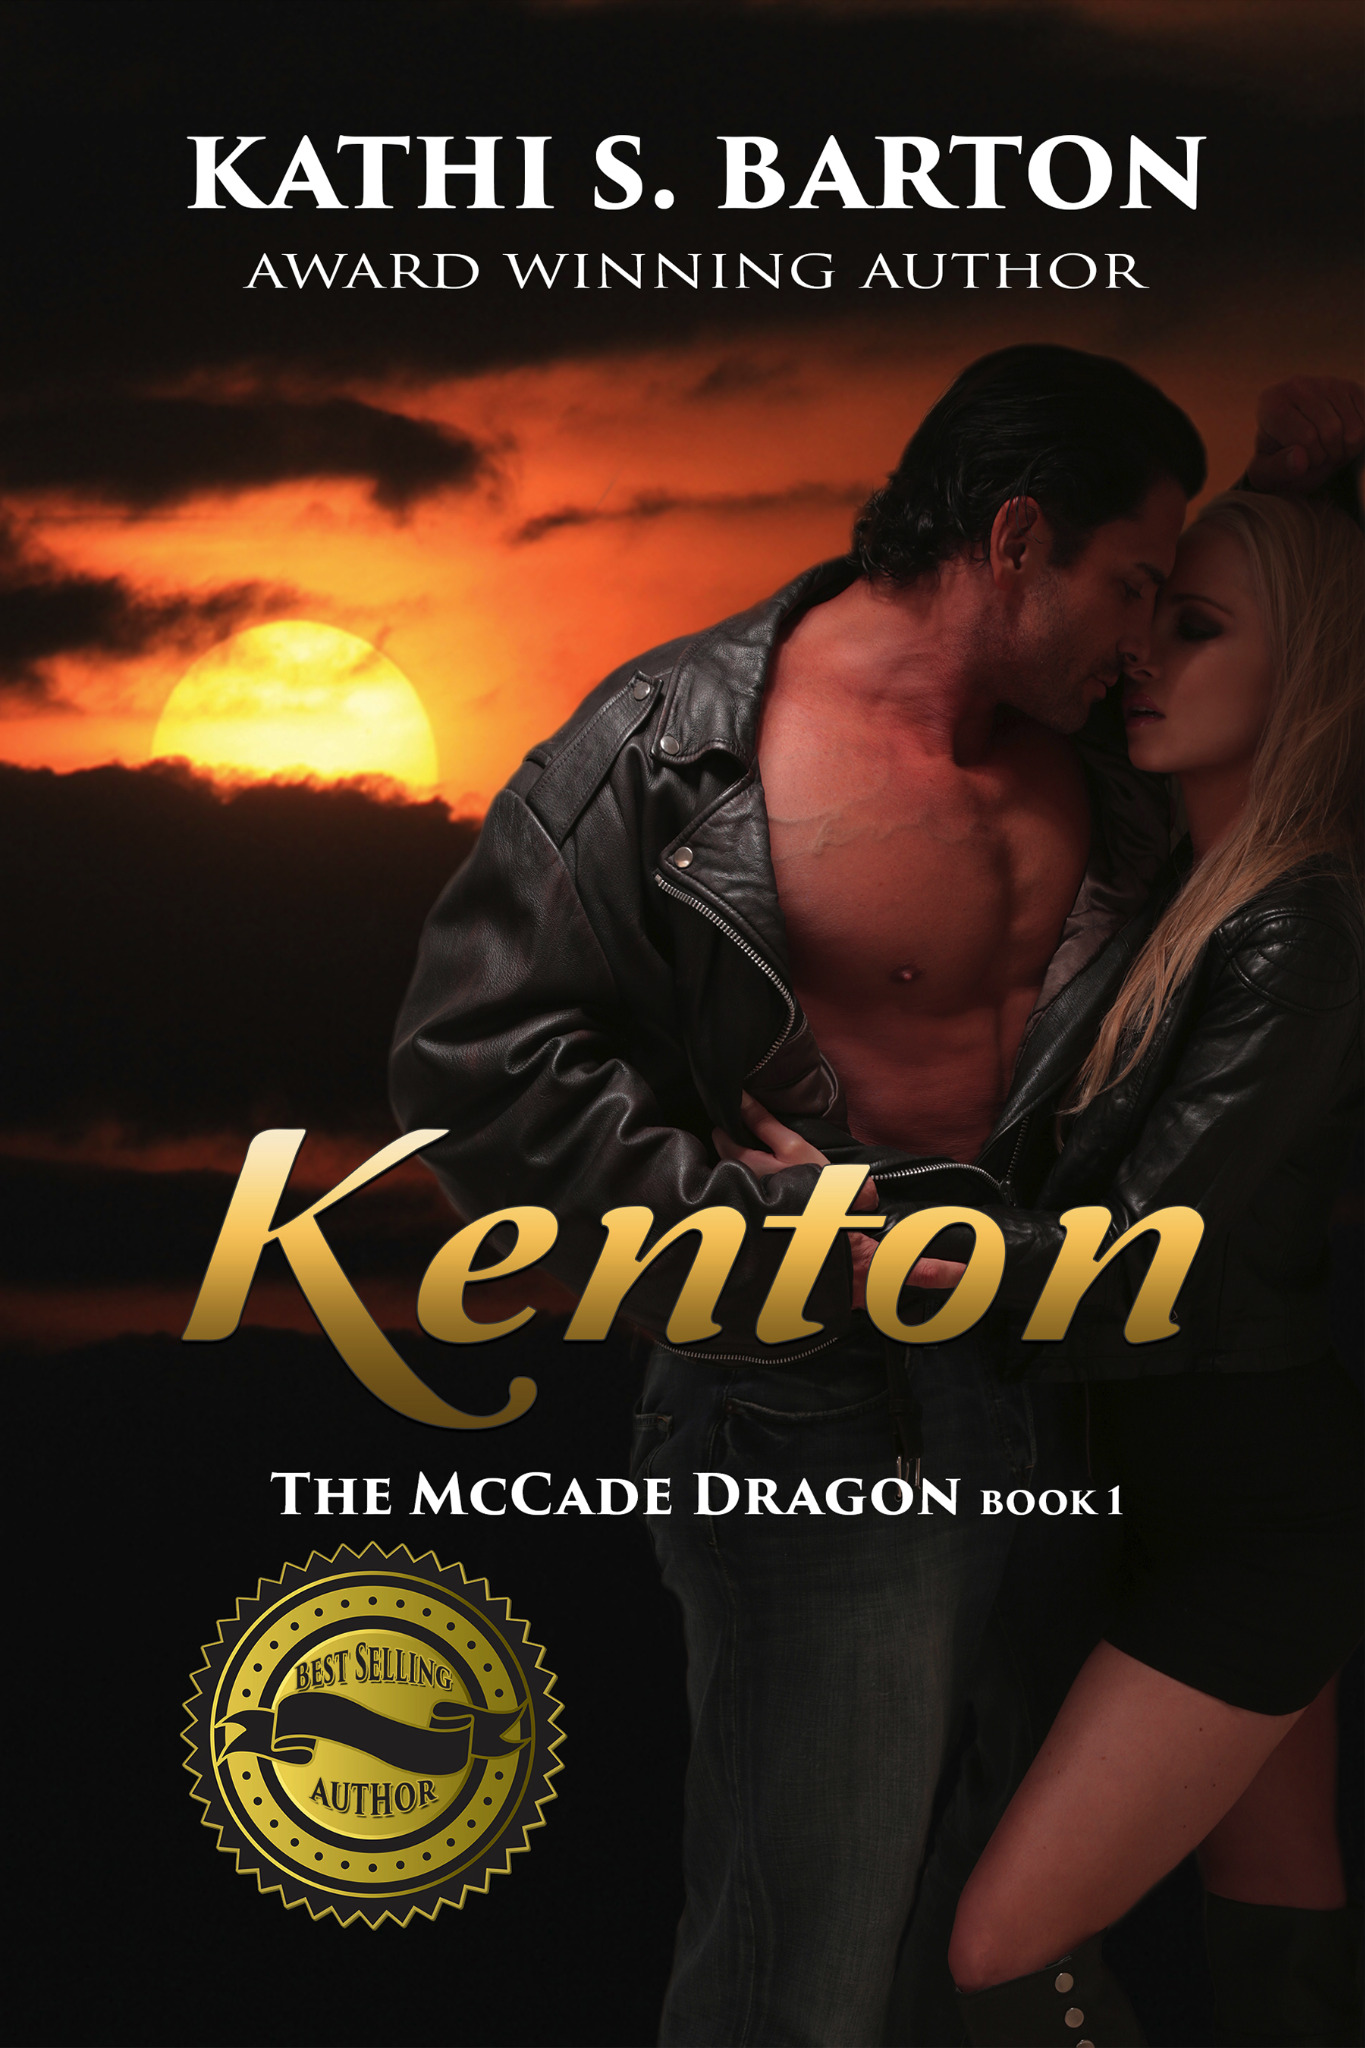 Kenton - The McCade Dragon Book 1